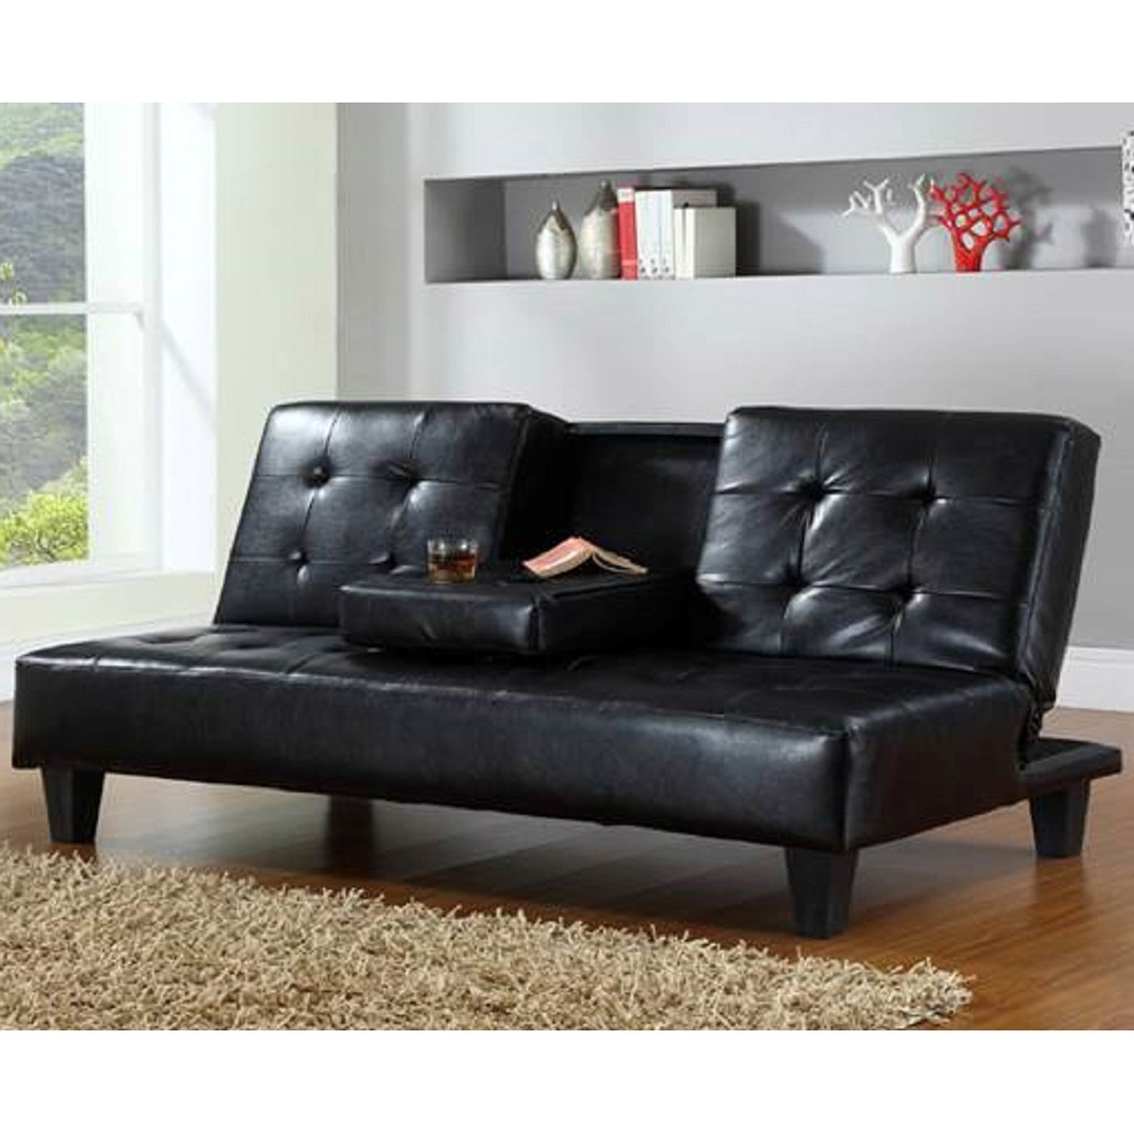 rialto faux leather futon sofa bed cheap cuddle uk hodedah and sofas couches